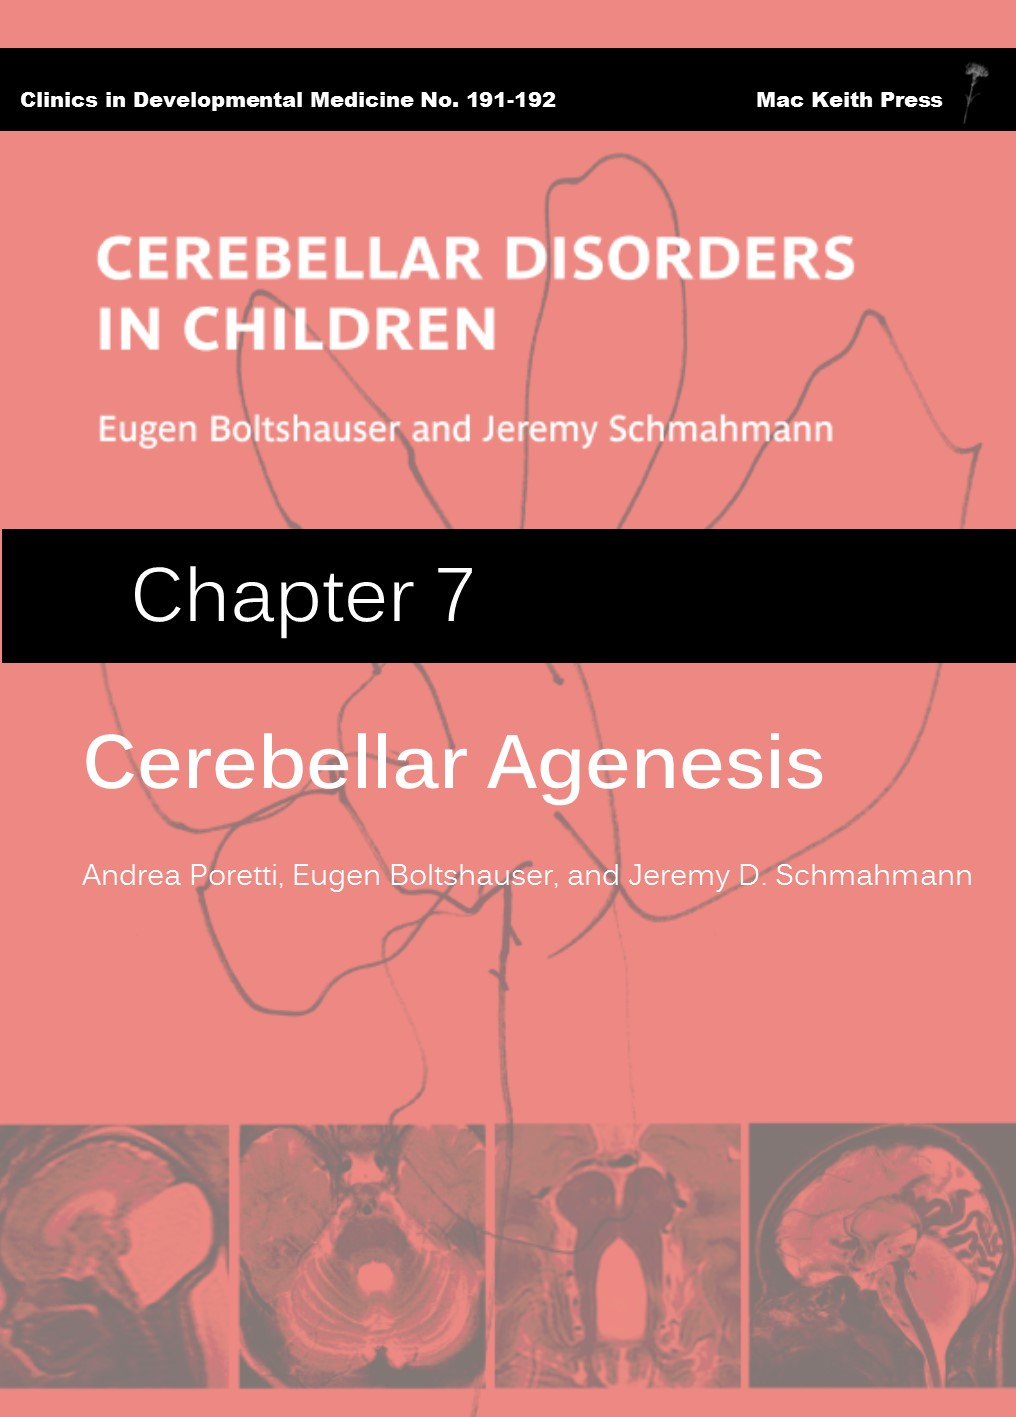 Cerebellar Agenesis - Cerebellar Disorders in Children (Chapter 7) COVER IMAGE